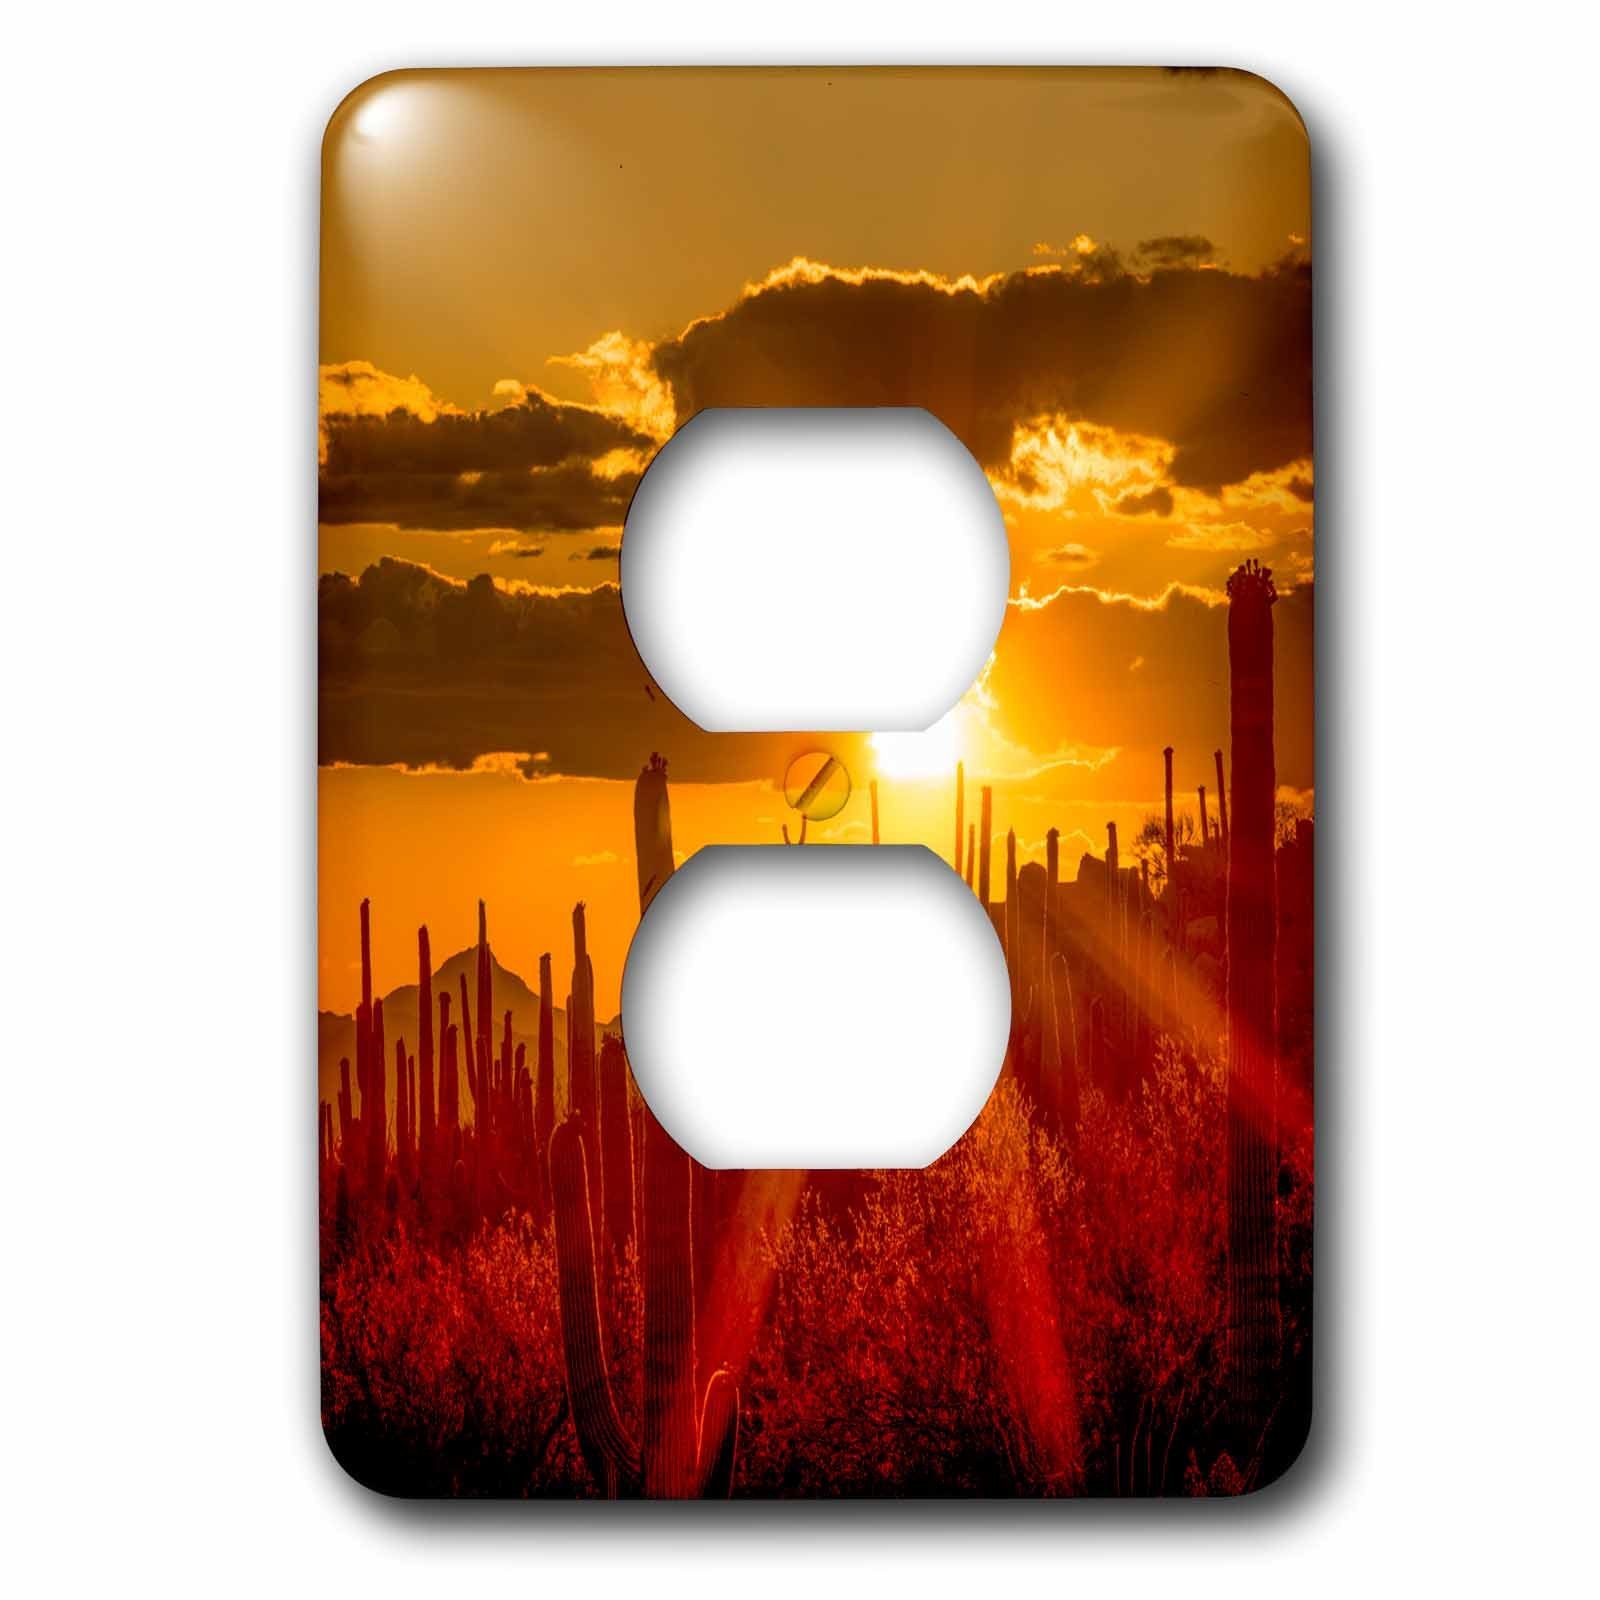 3dRose Danita Delimont - Sunsets - USA, Arizona, Tucson, Orange sunset over Saguaro National Park - Light Switch Covers - 2 plug outlet cover (lsp_278475_6) by 3dRose